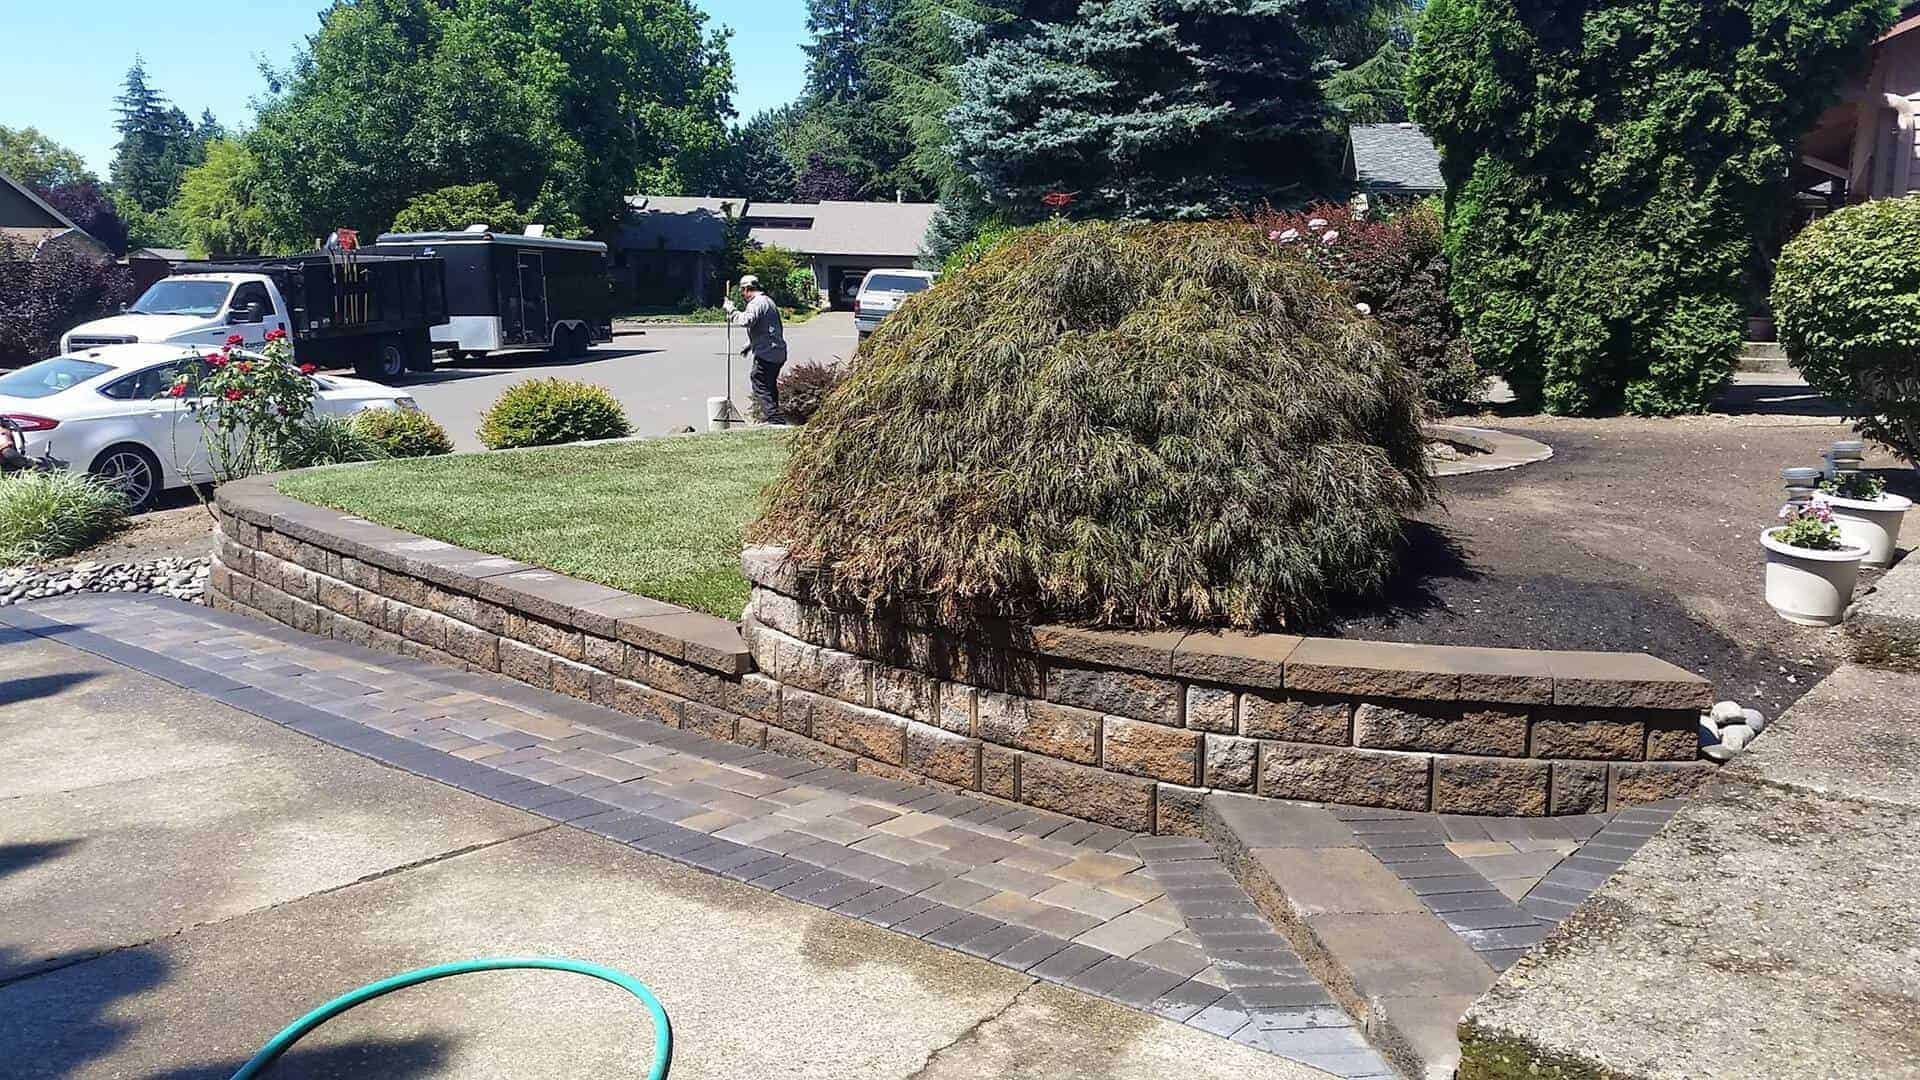 Retaining wall made out of brick pavers or natural stone with pathway and small trees trimmed and lawn maintained